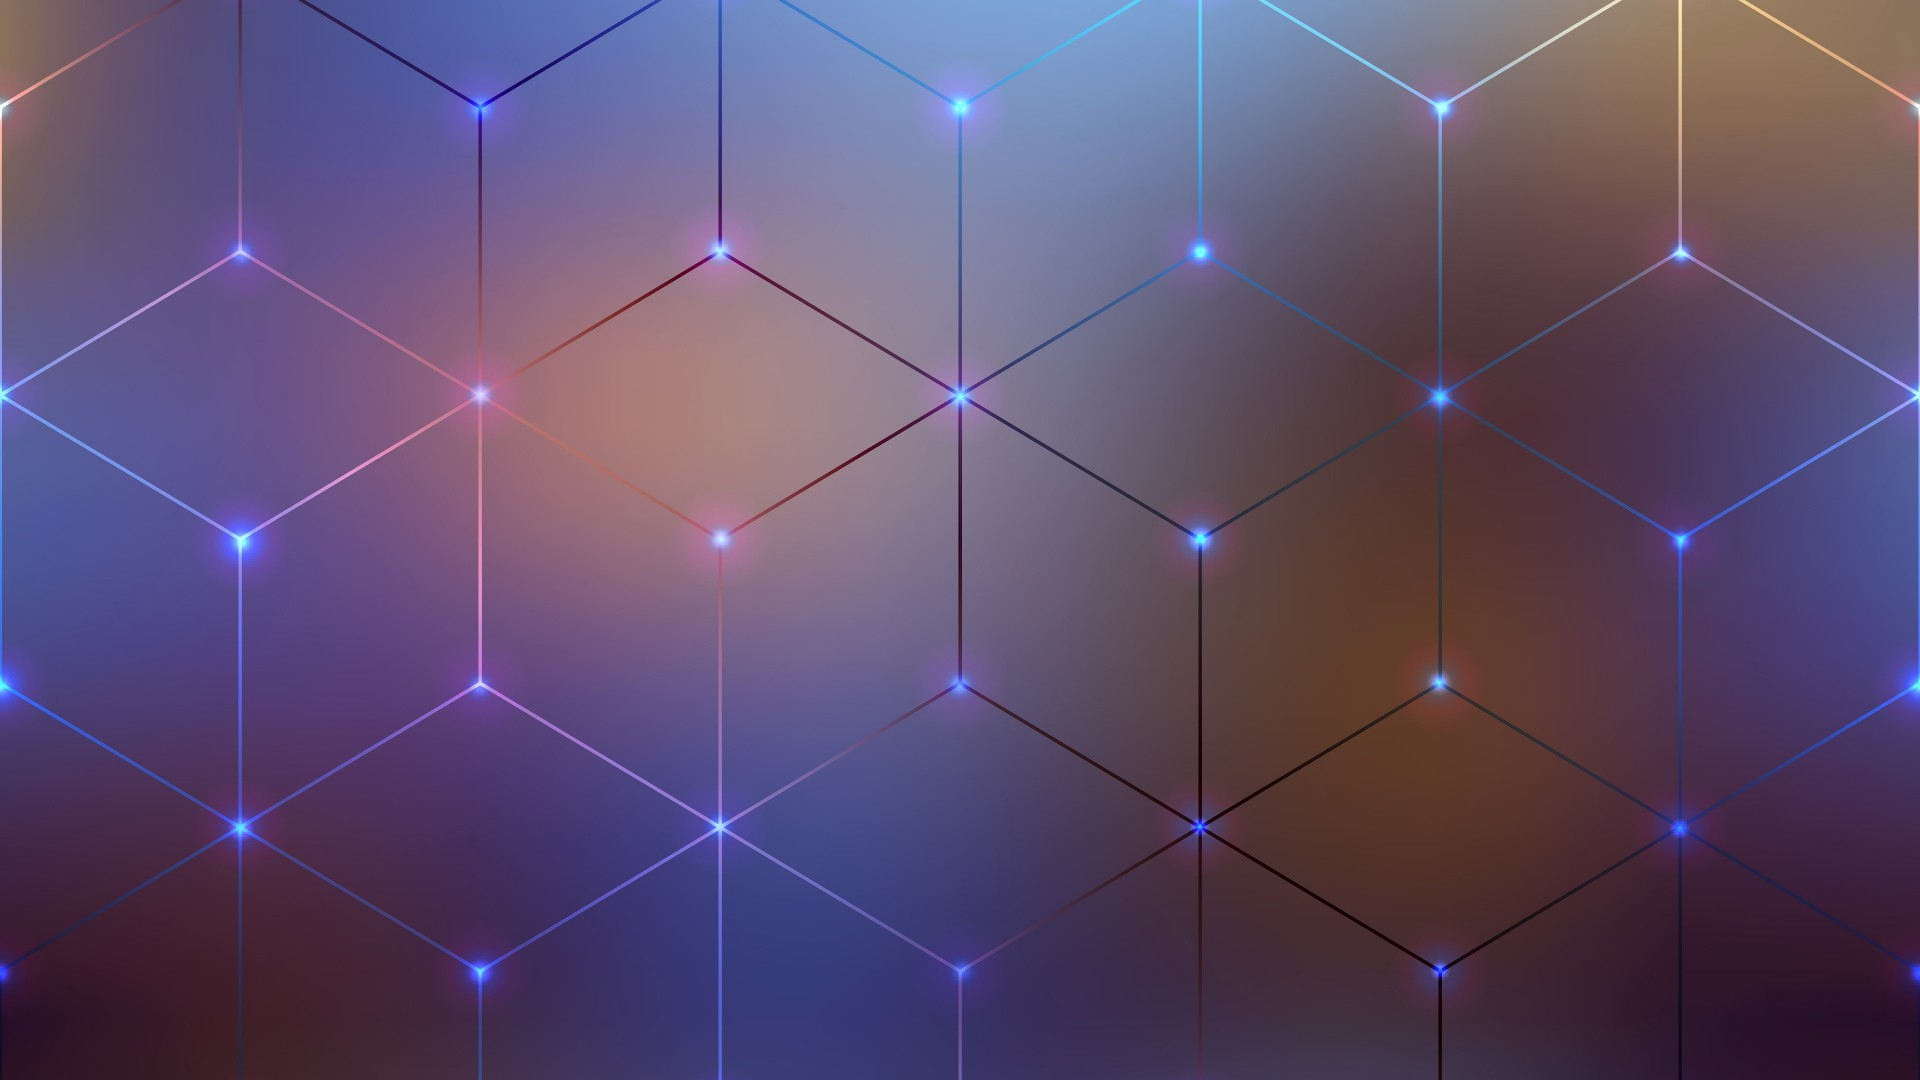 Wallpaper Spectrum Electromagnetic Lines 4k 5k Android